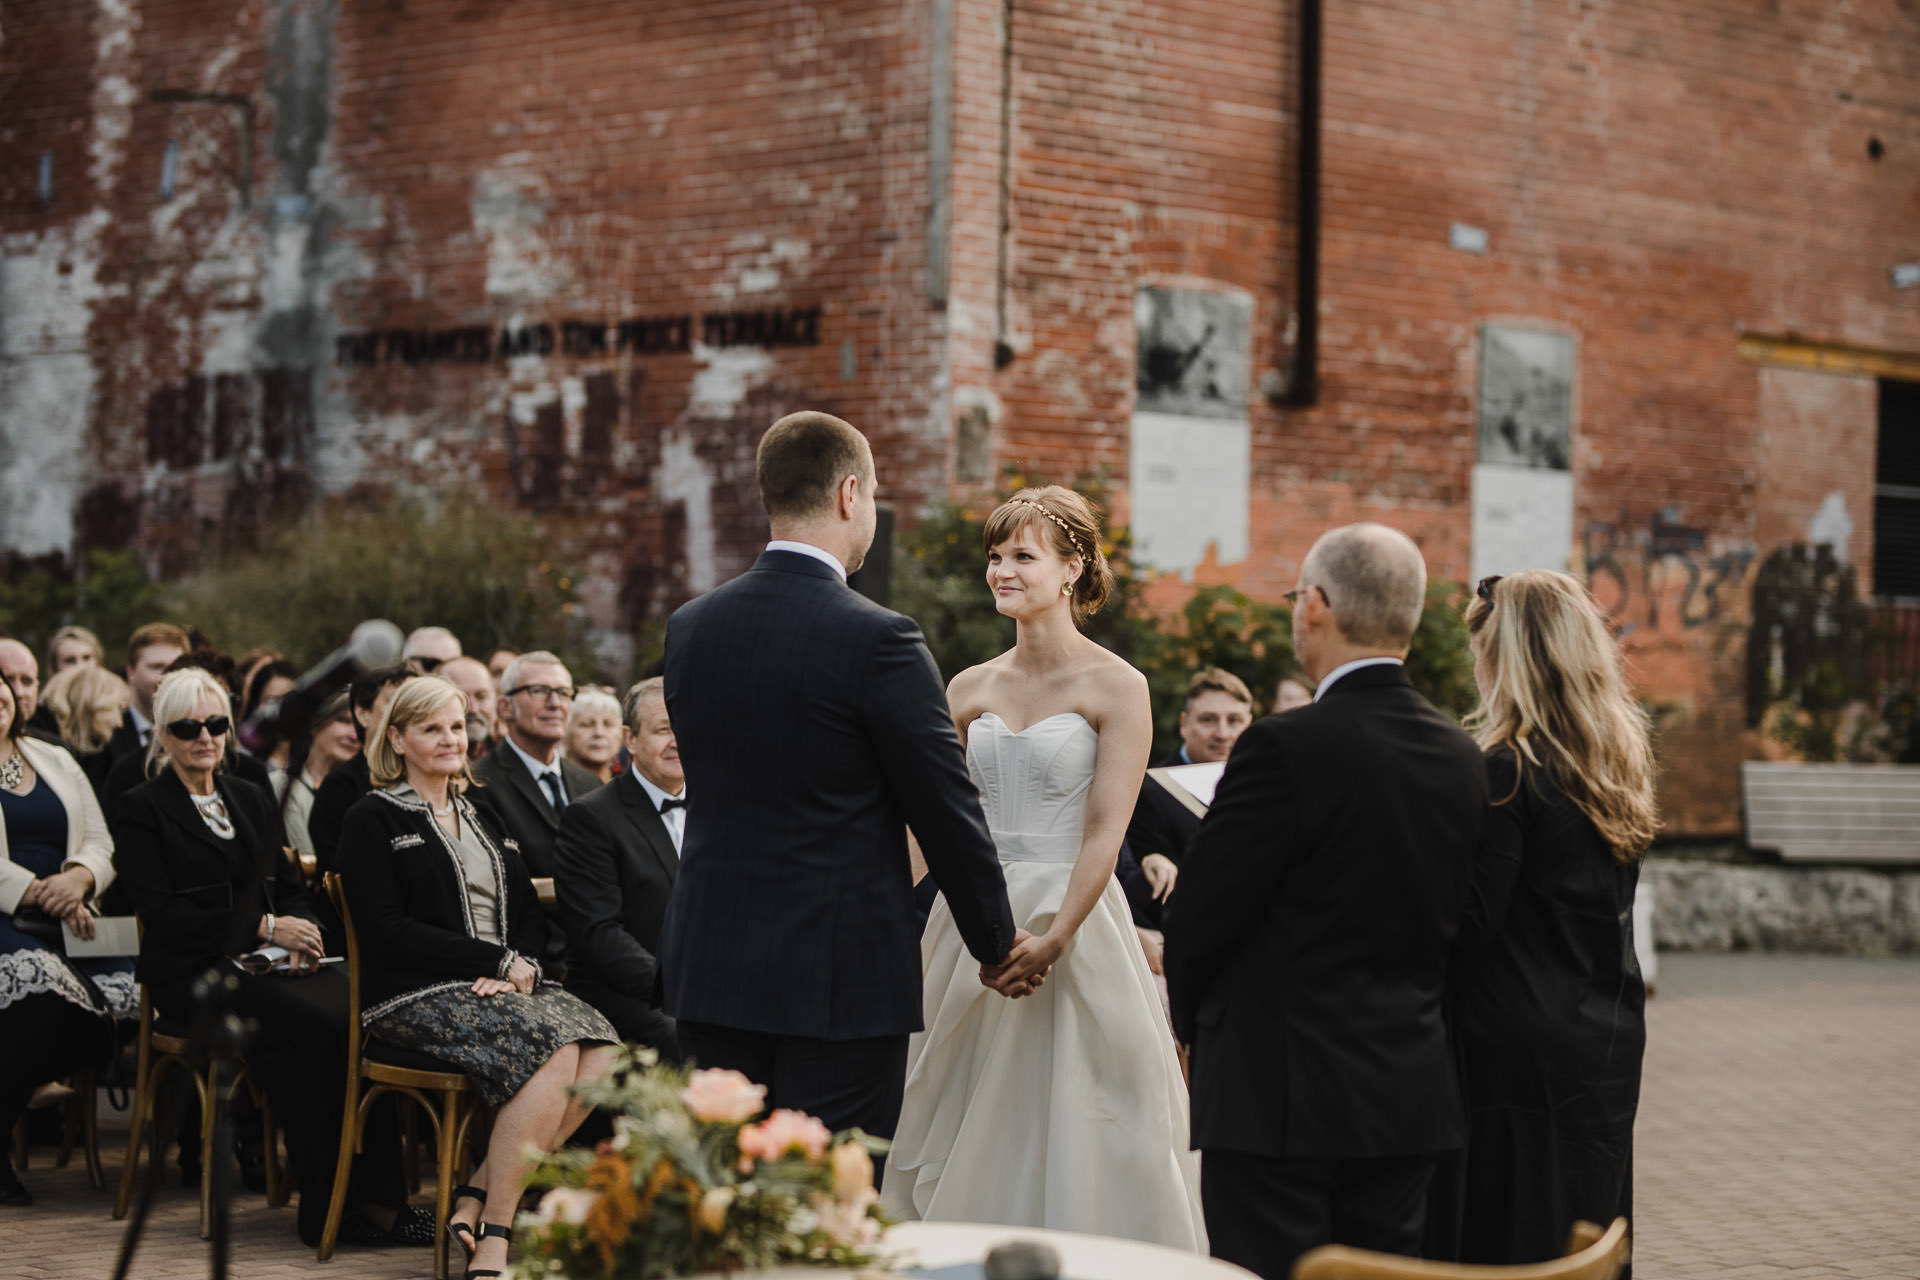 Evergreen Brickworks wedding photographer - bride and groom holding hands